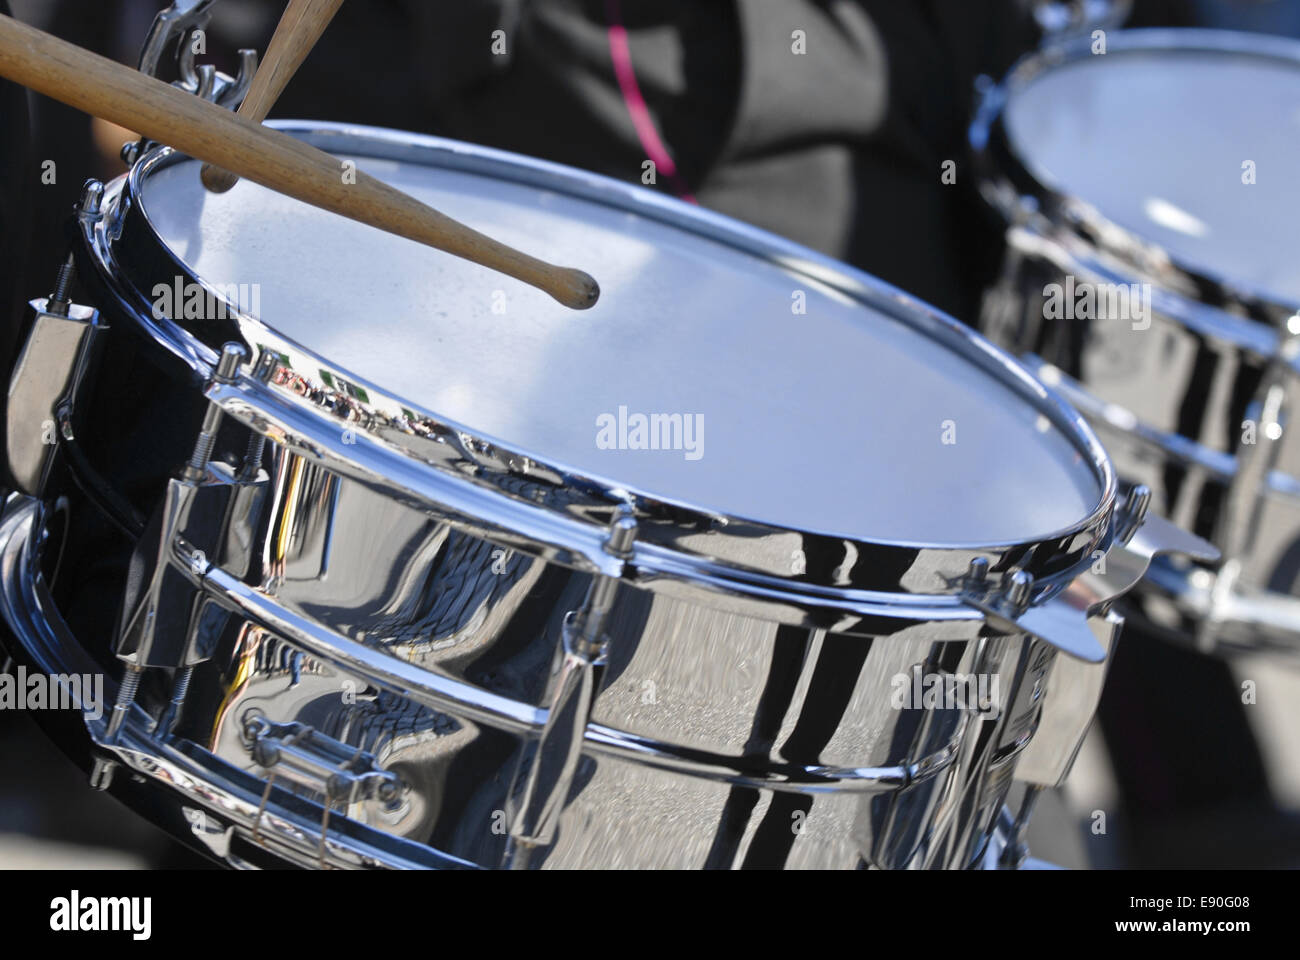 Snare Stock Photos & Snare Stock Images - Alamy